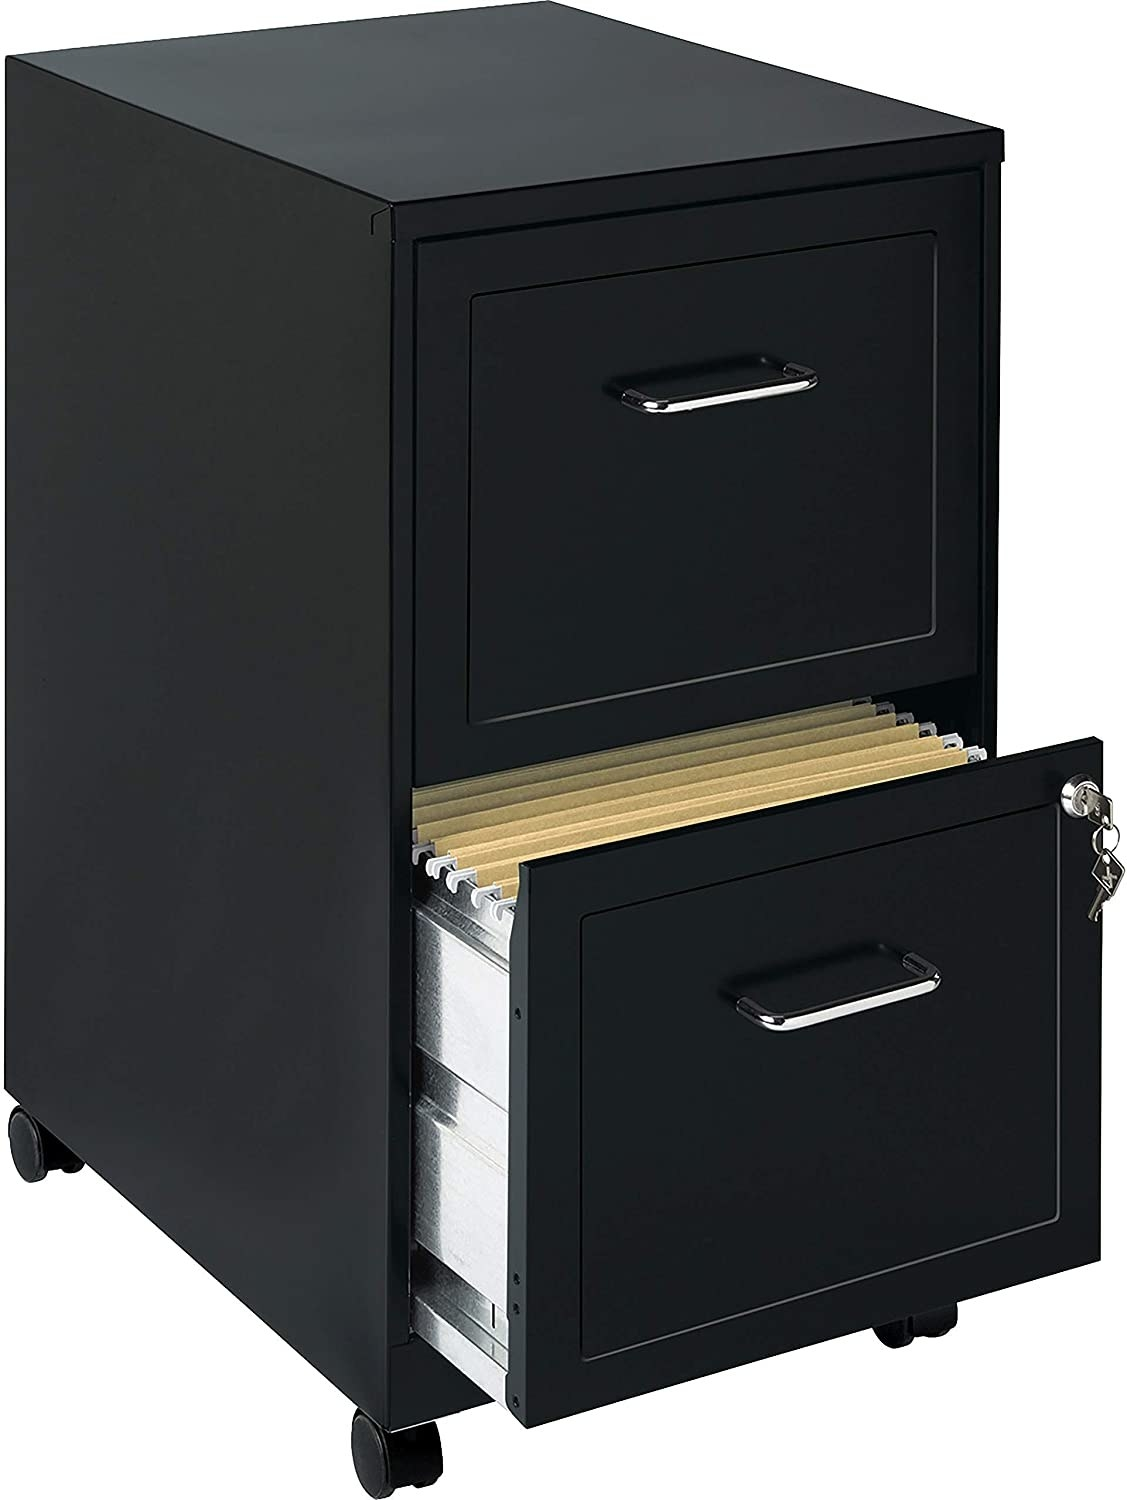 A small metal filing cabinet with two drawers The lower drawer is slightly open and has a small lock in the top right corner